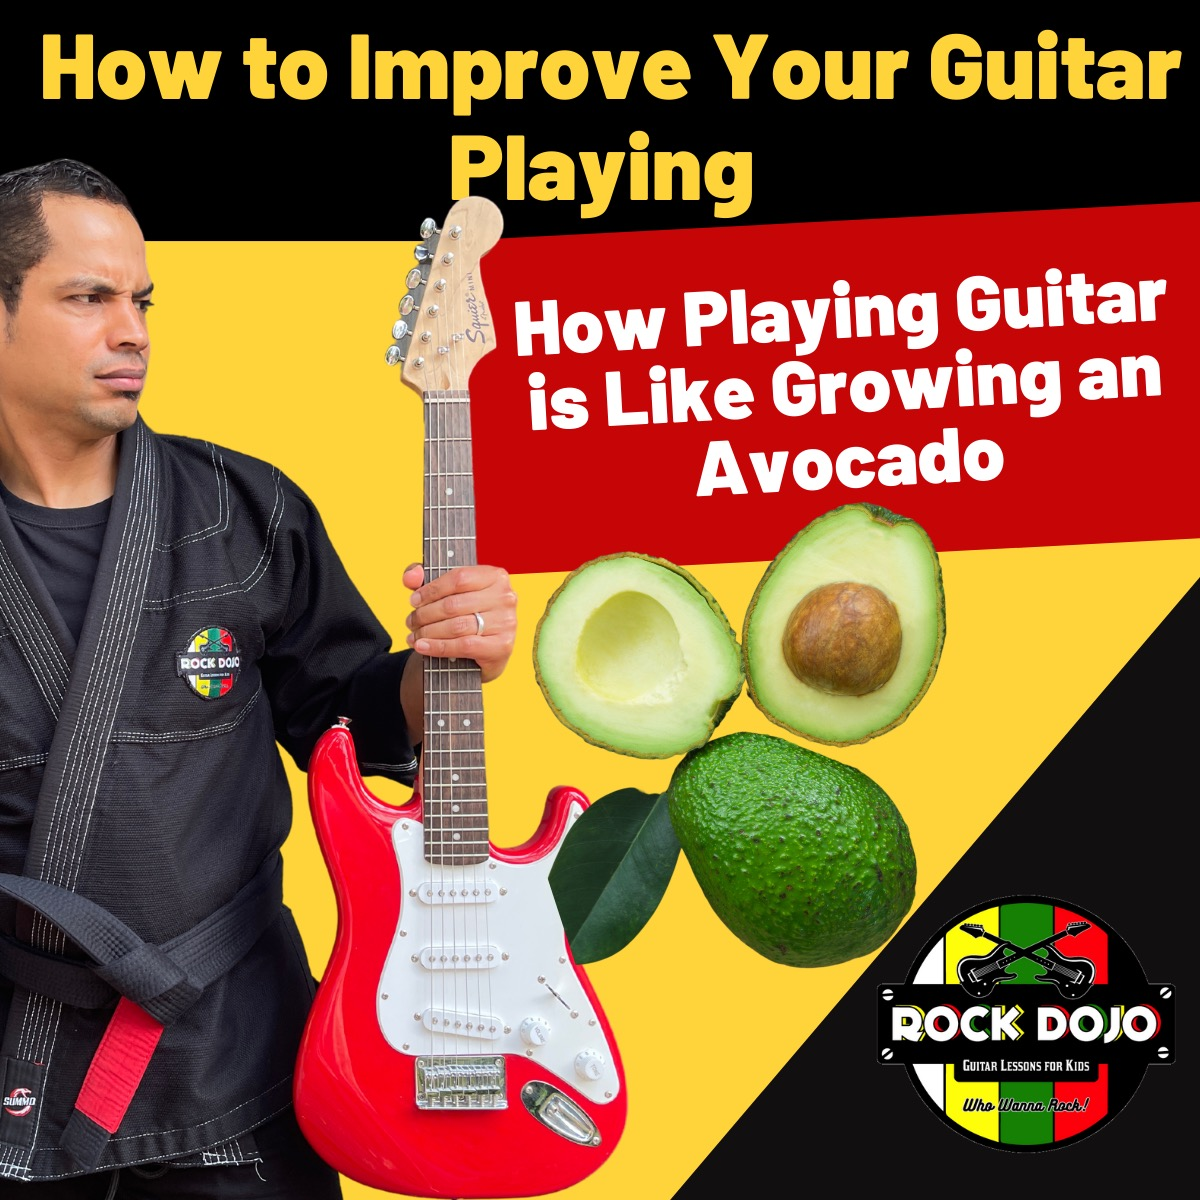 How to Improve Your Guitar Playing